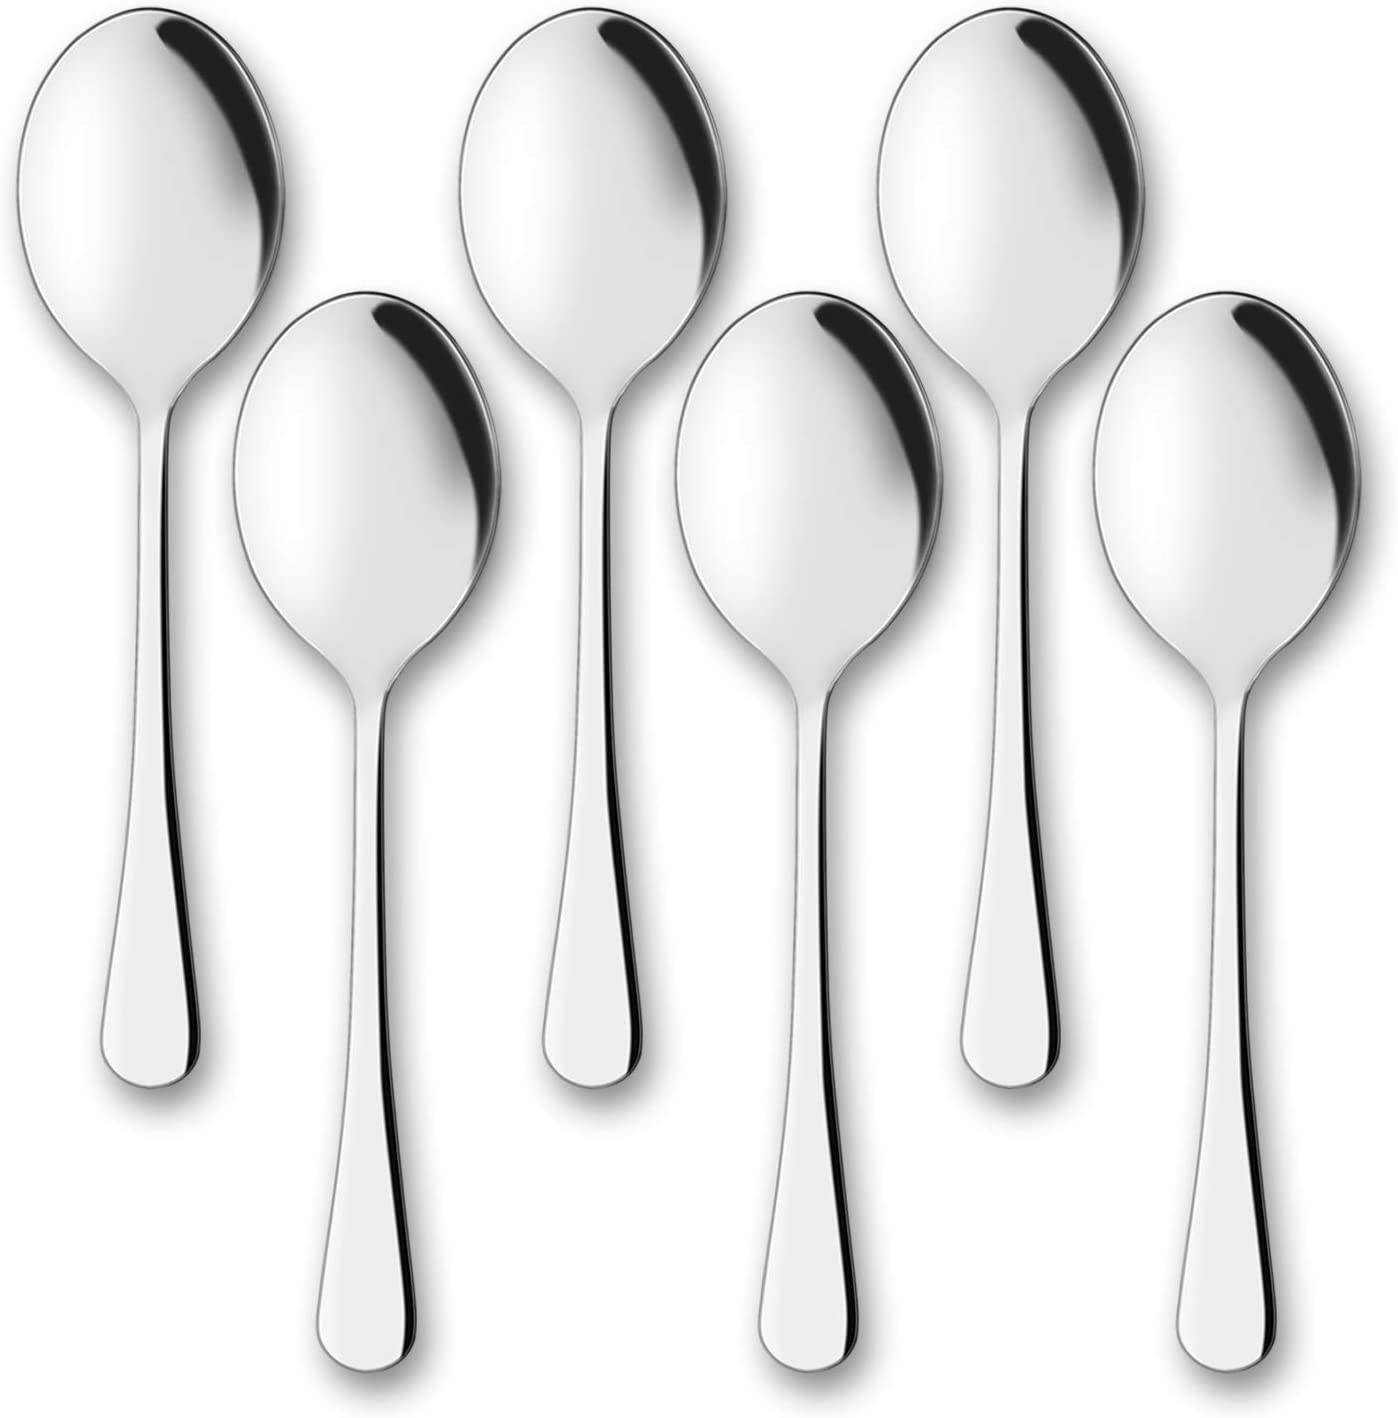 Serving Spoons, AOOSY 6 Pieces X-Large 9.8 Inches Stainless Steel Serving Spoon Catering Spoons Solid Serving Utensils Big Ladle Tablespoons for Buffet Banquet Flatware Kitchen Basics Serving